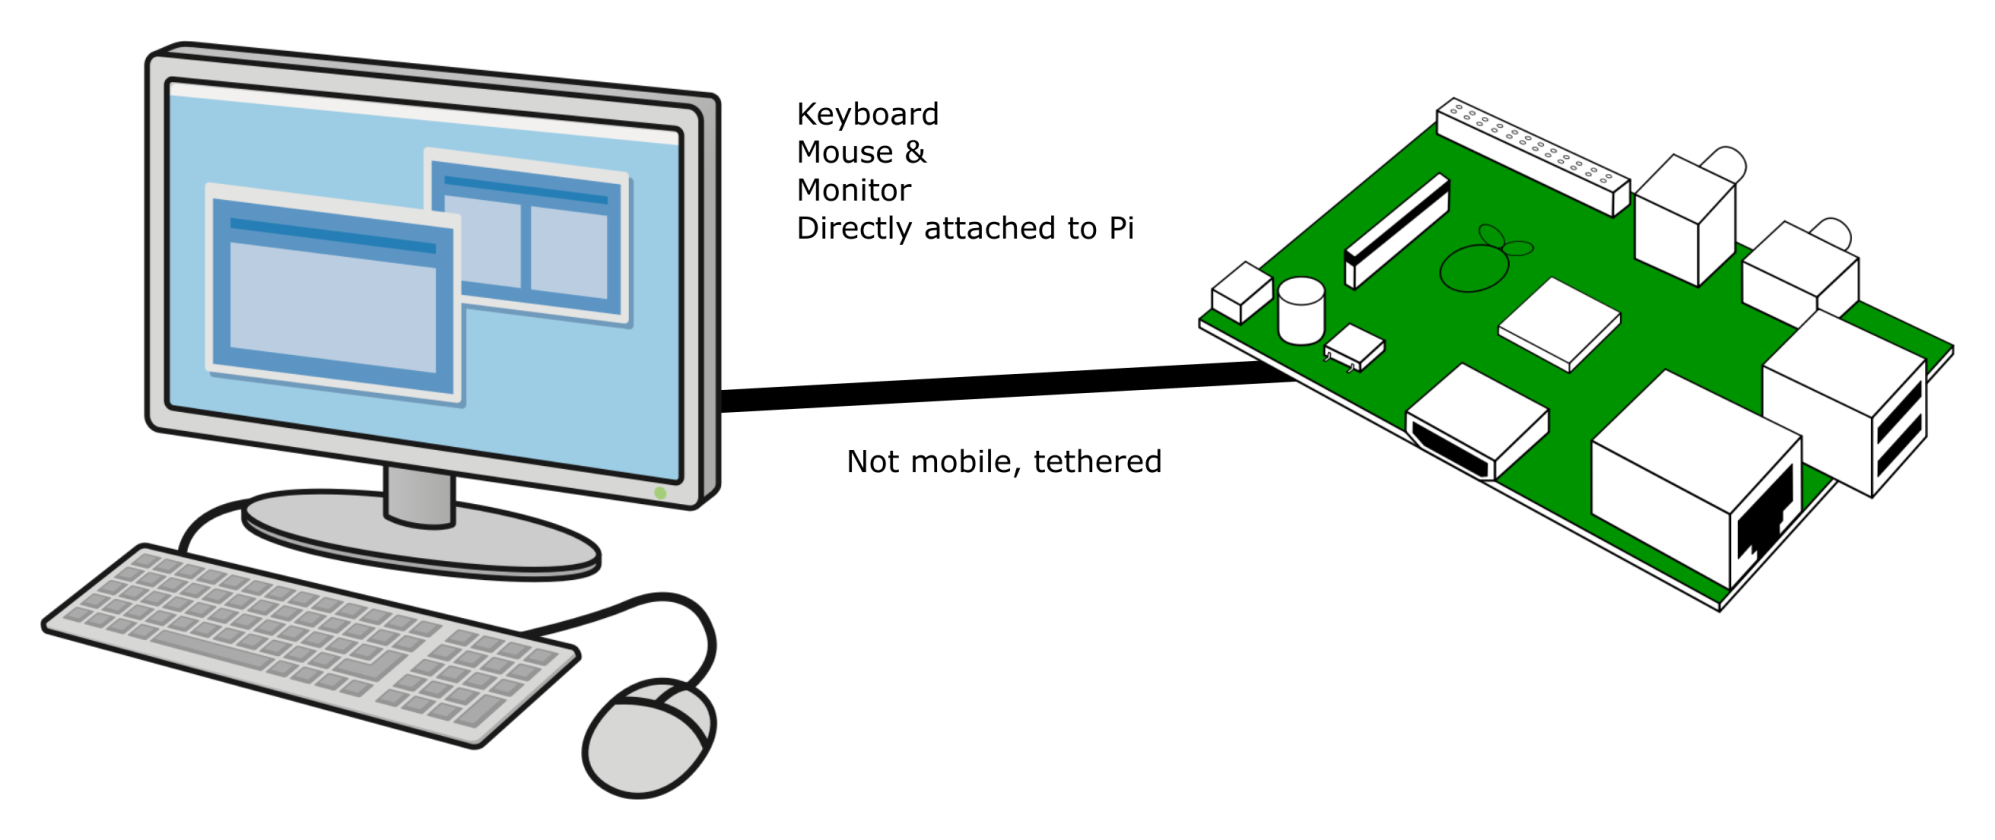 A Raspberry Pi tethered to a screen, keyboard, and mouse